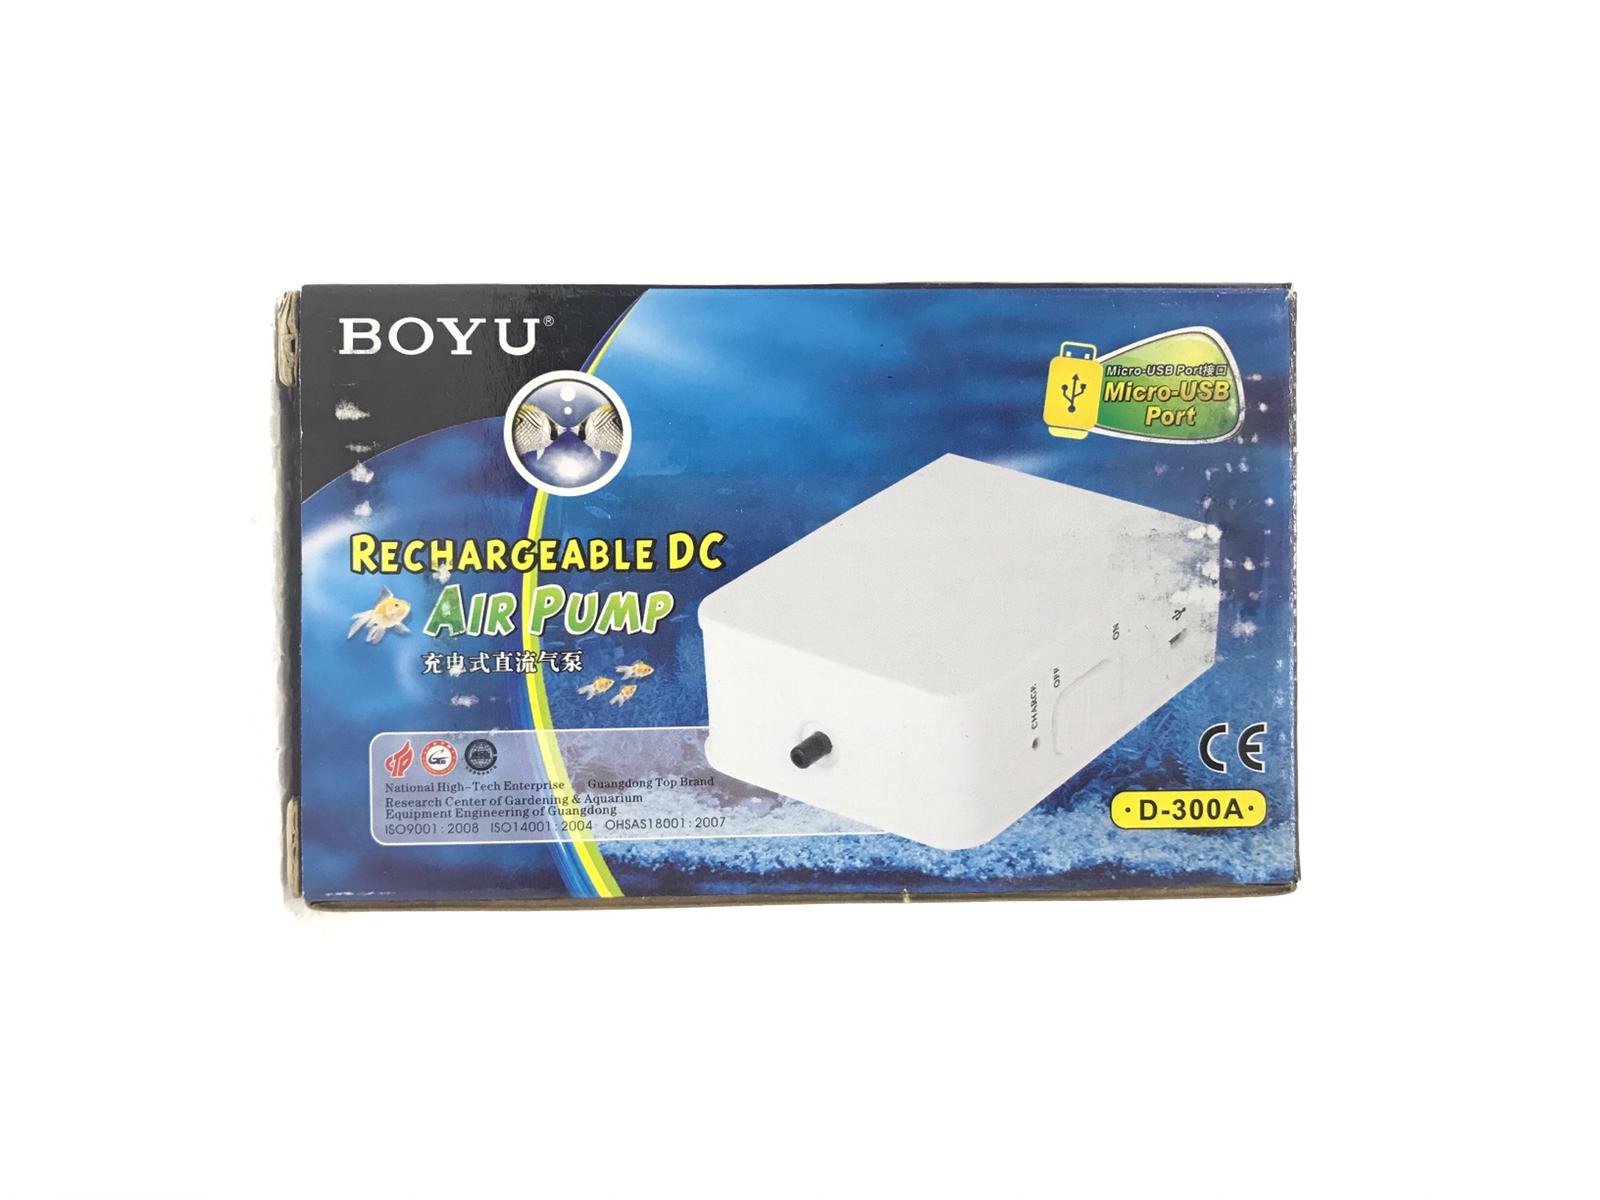 Boyu Rechargeable DC Air Pump D-300A